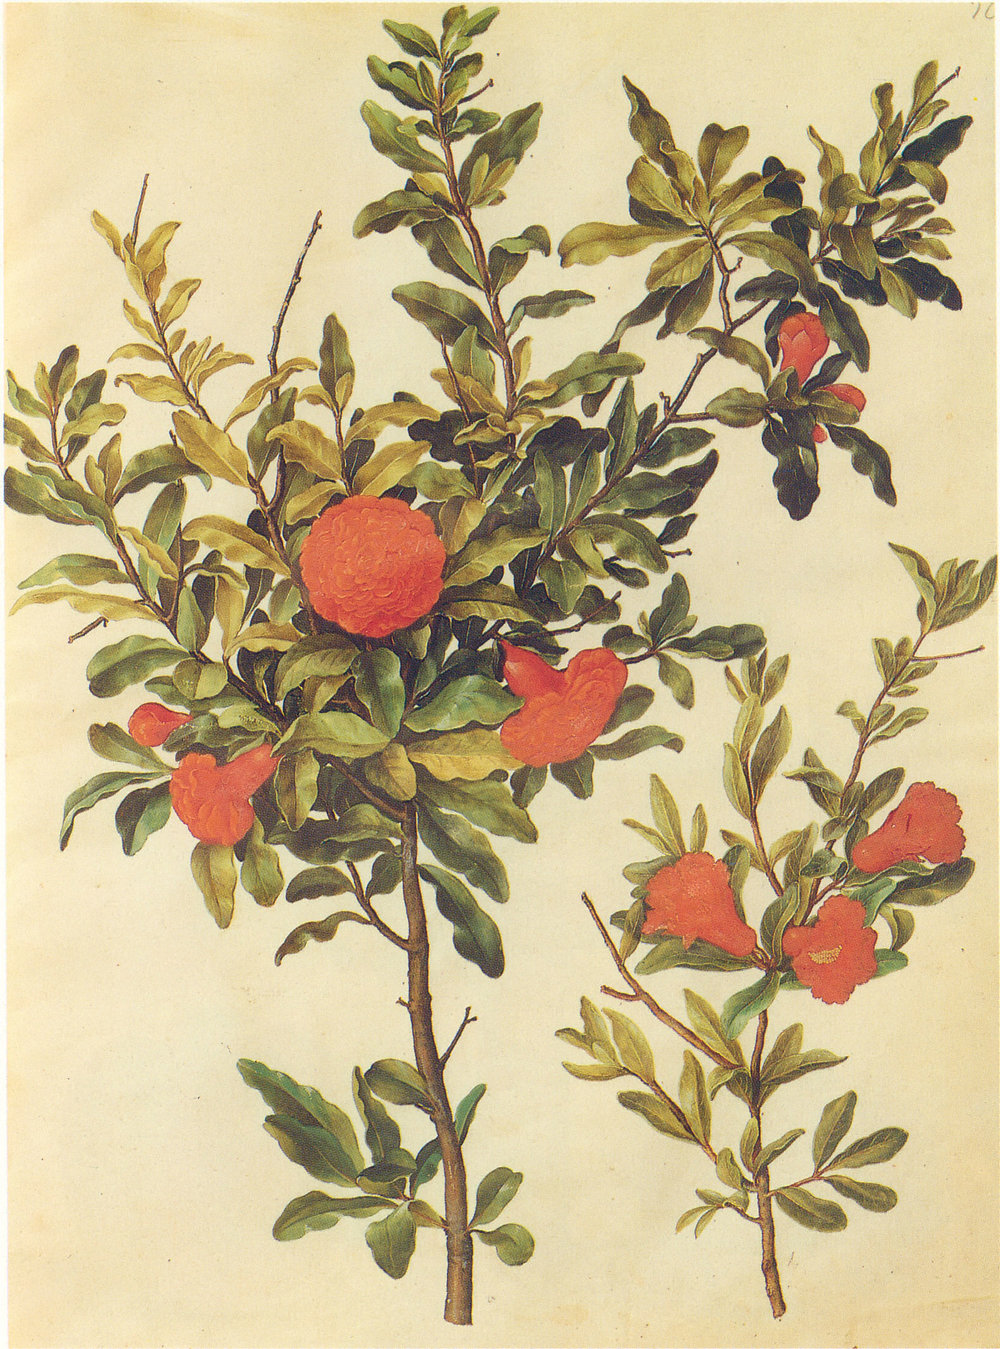 An example of a classic botanical illustration (not mine)